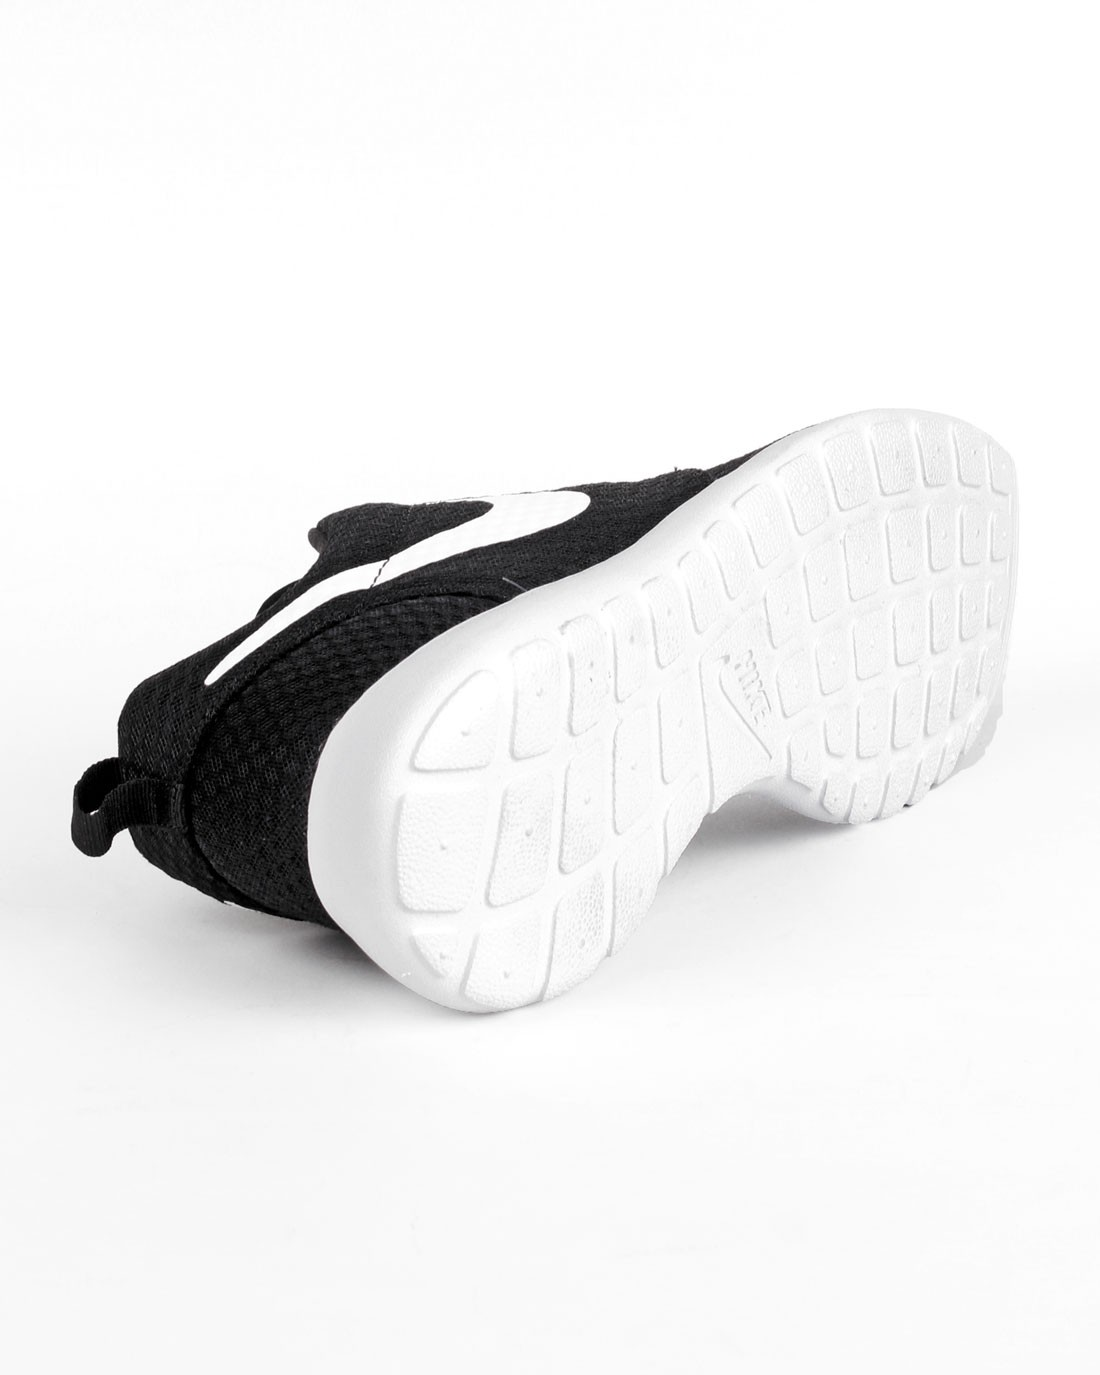 the best attitude 8dfcb f0905 ... Homme Nike Roshe One BR (Breeze) Monochrome Pack Chaussures Noir Blanc  718552-011 ...